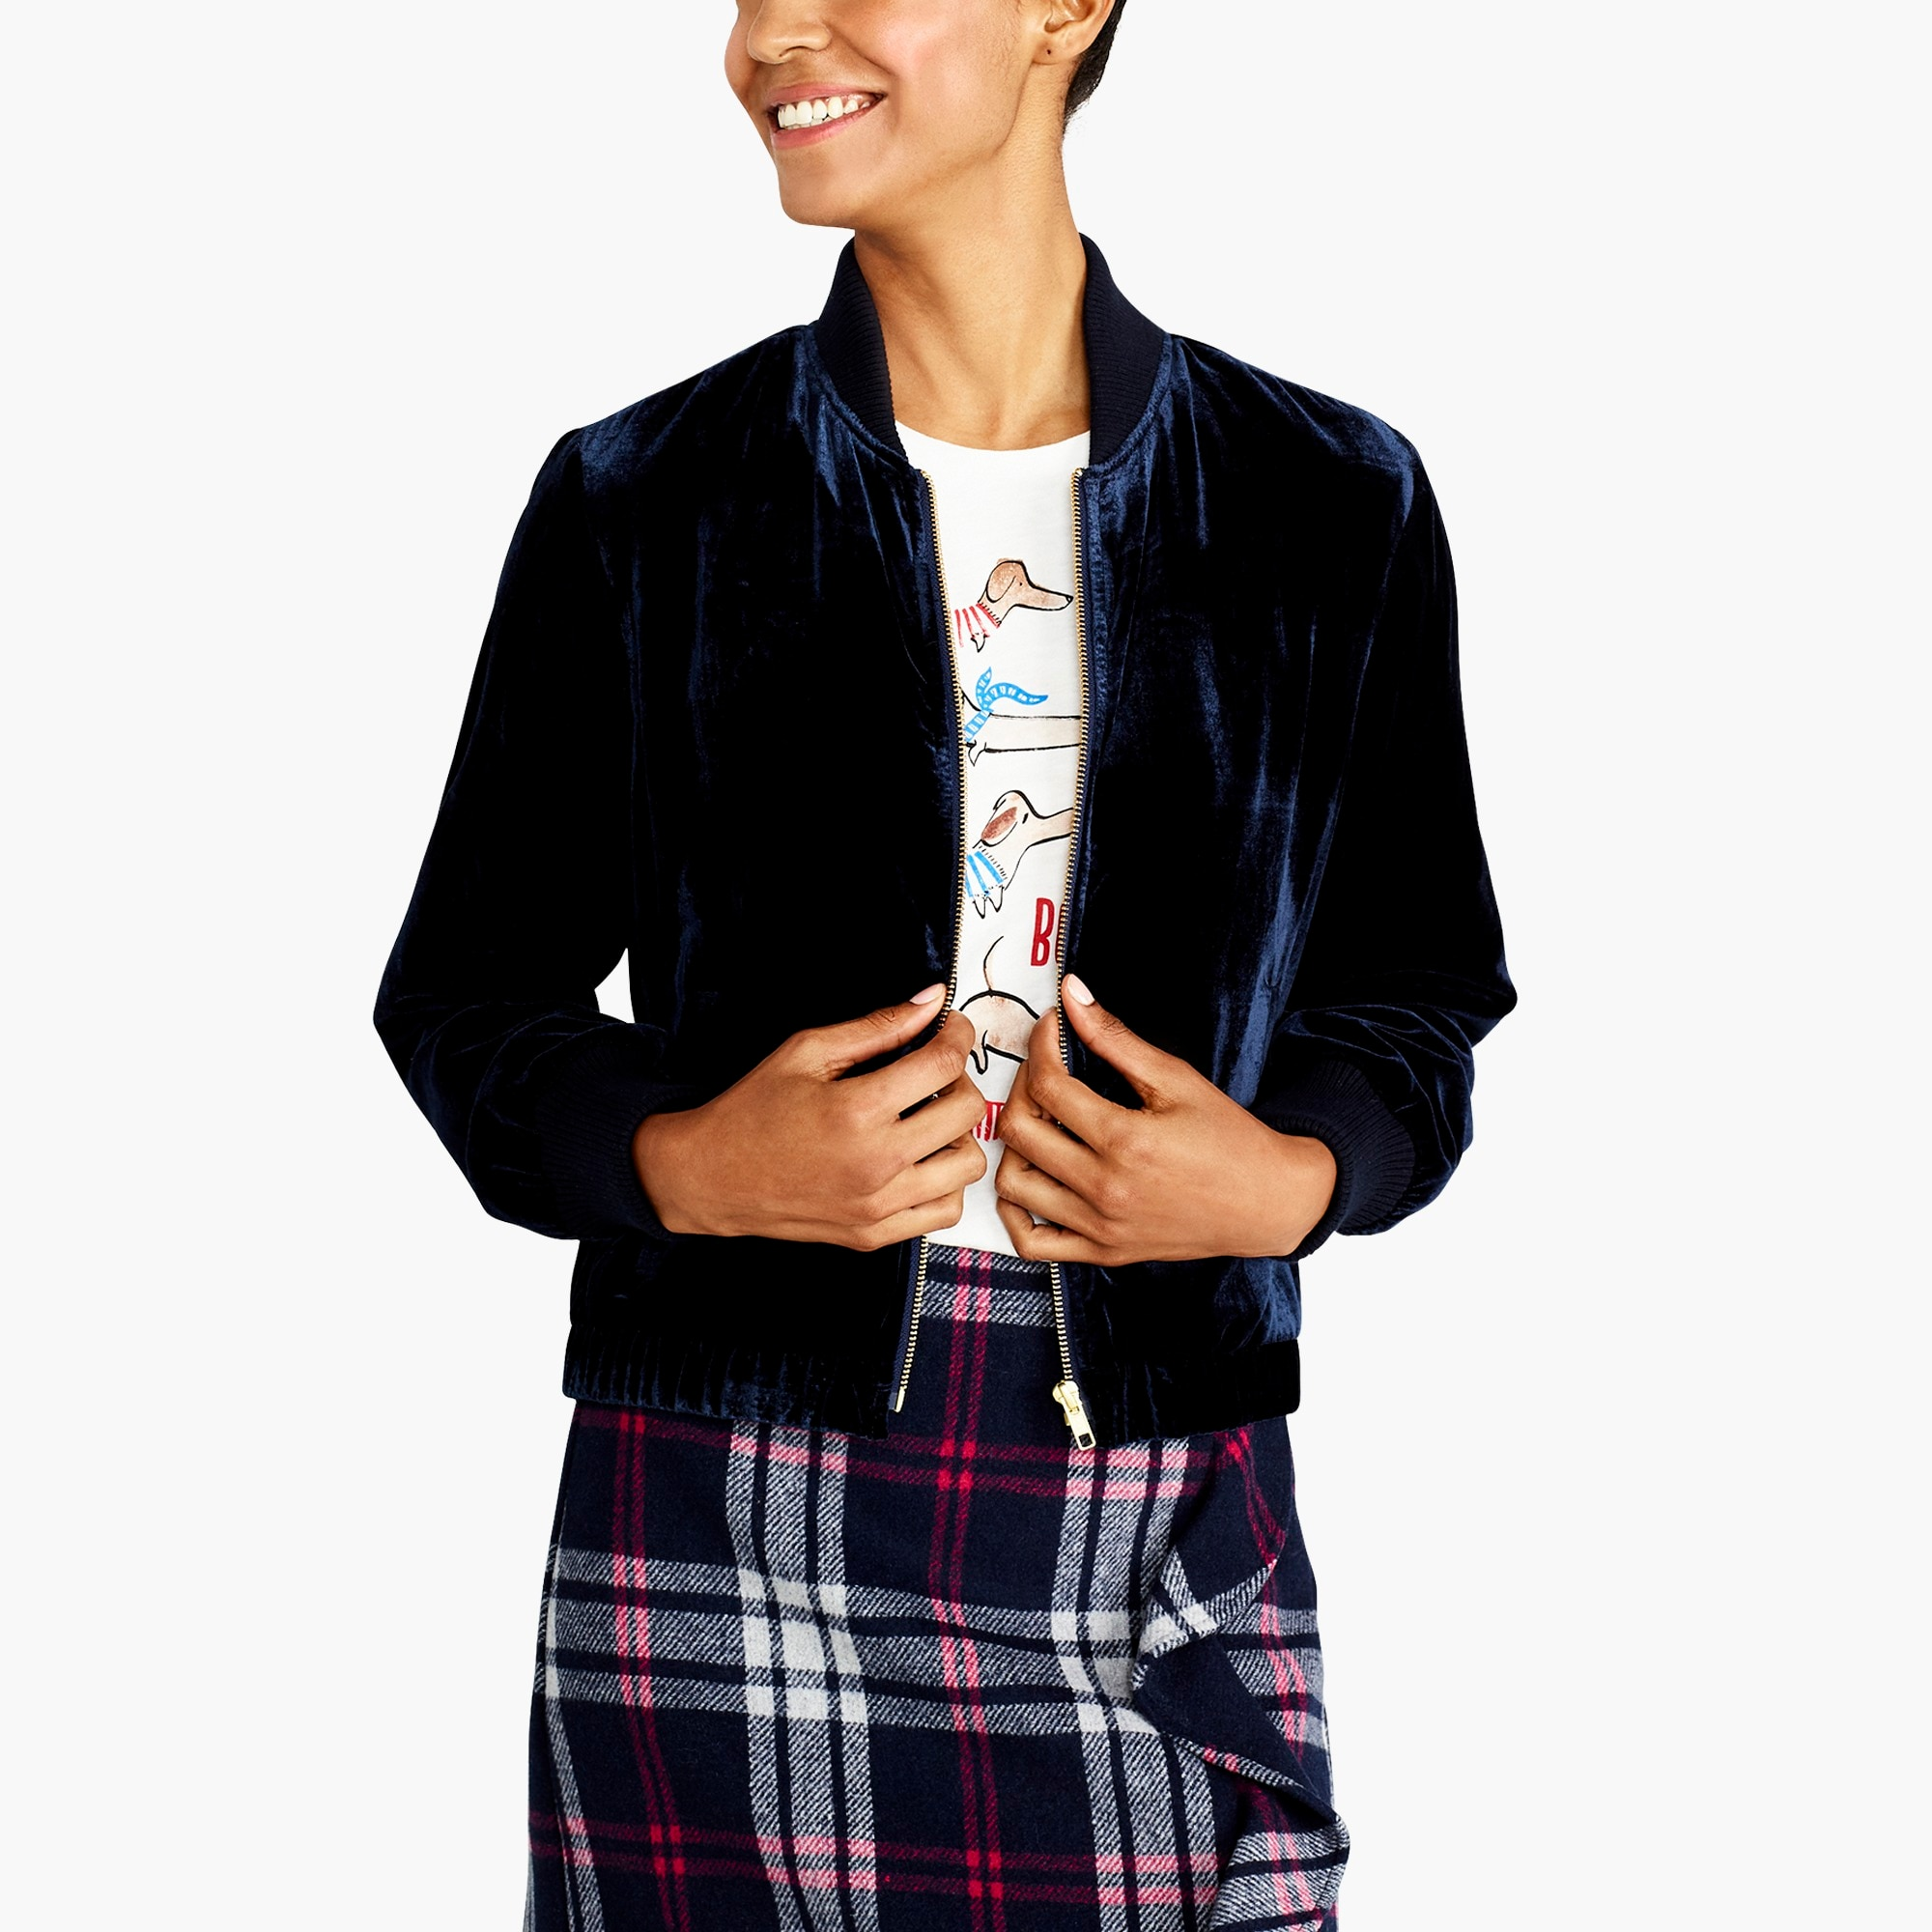 Velvet Bomber Jacket by J.Crew